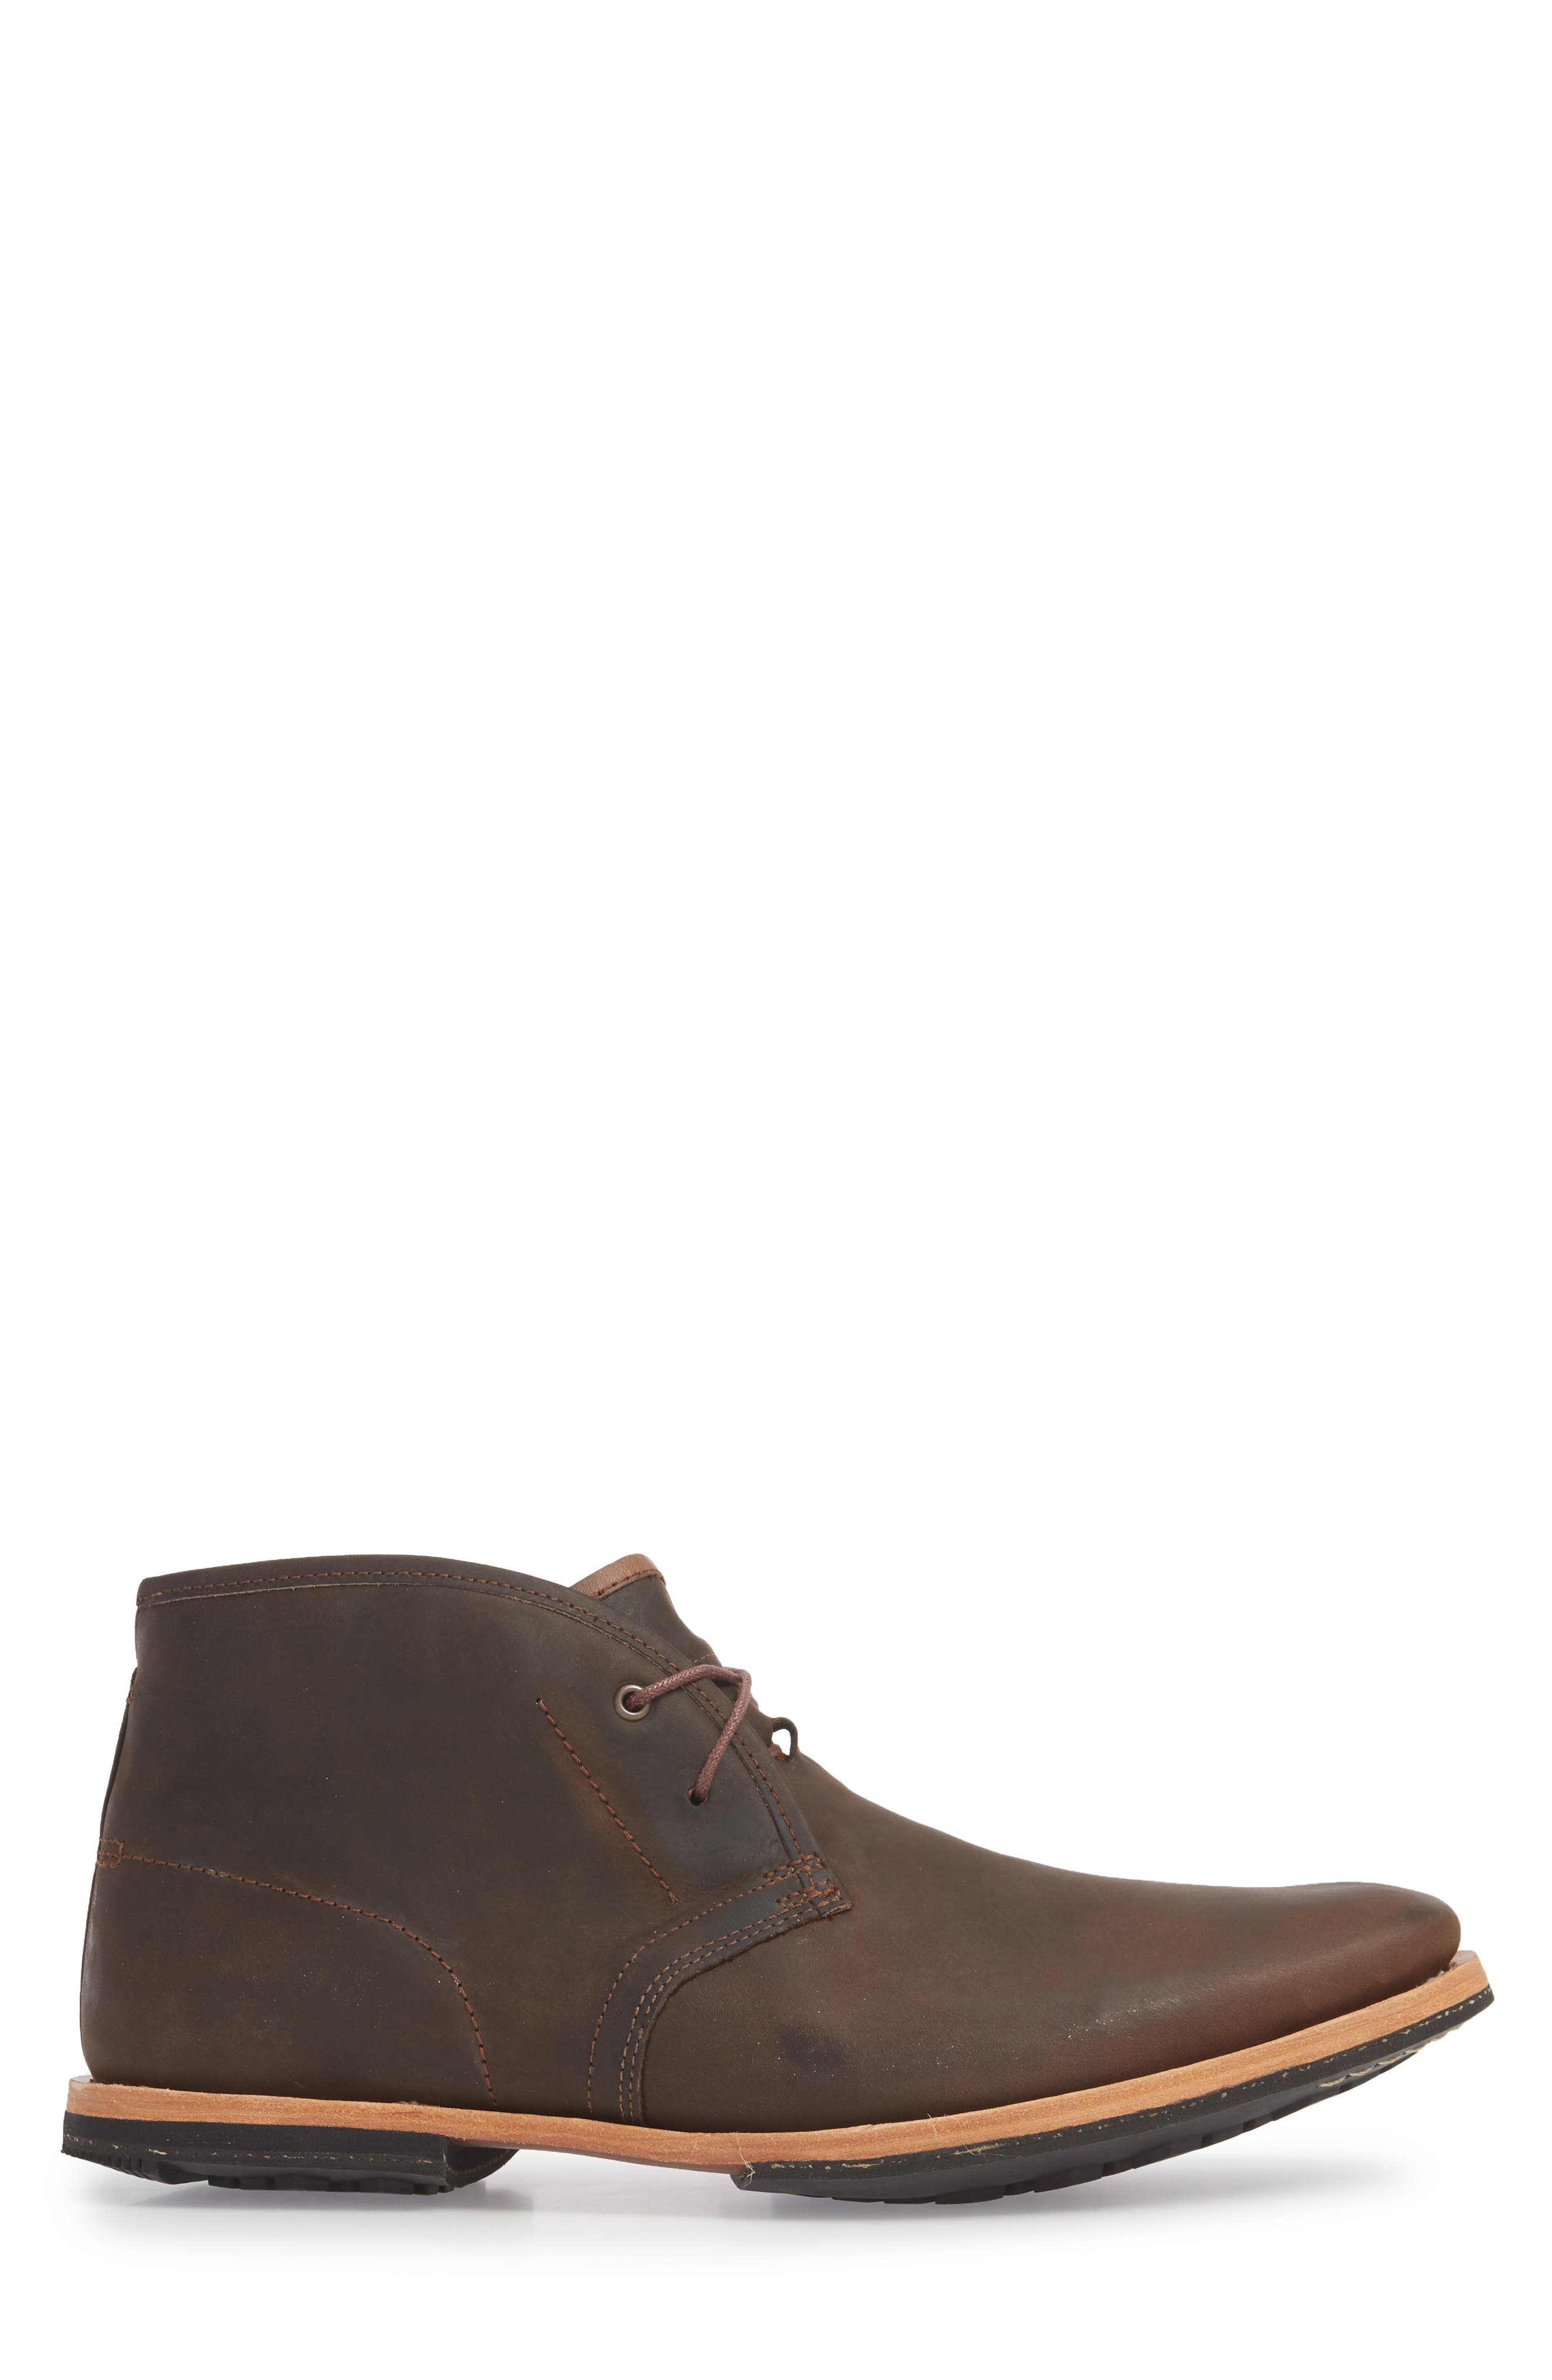 Wodehouse History Chukka Boot,                             Alternate thumbnail 3, color,                             Brown Leather